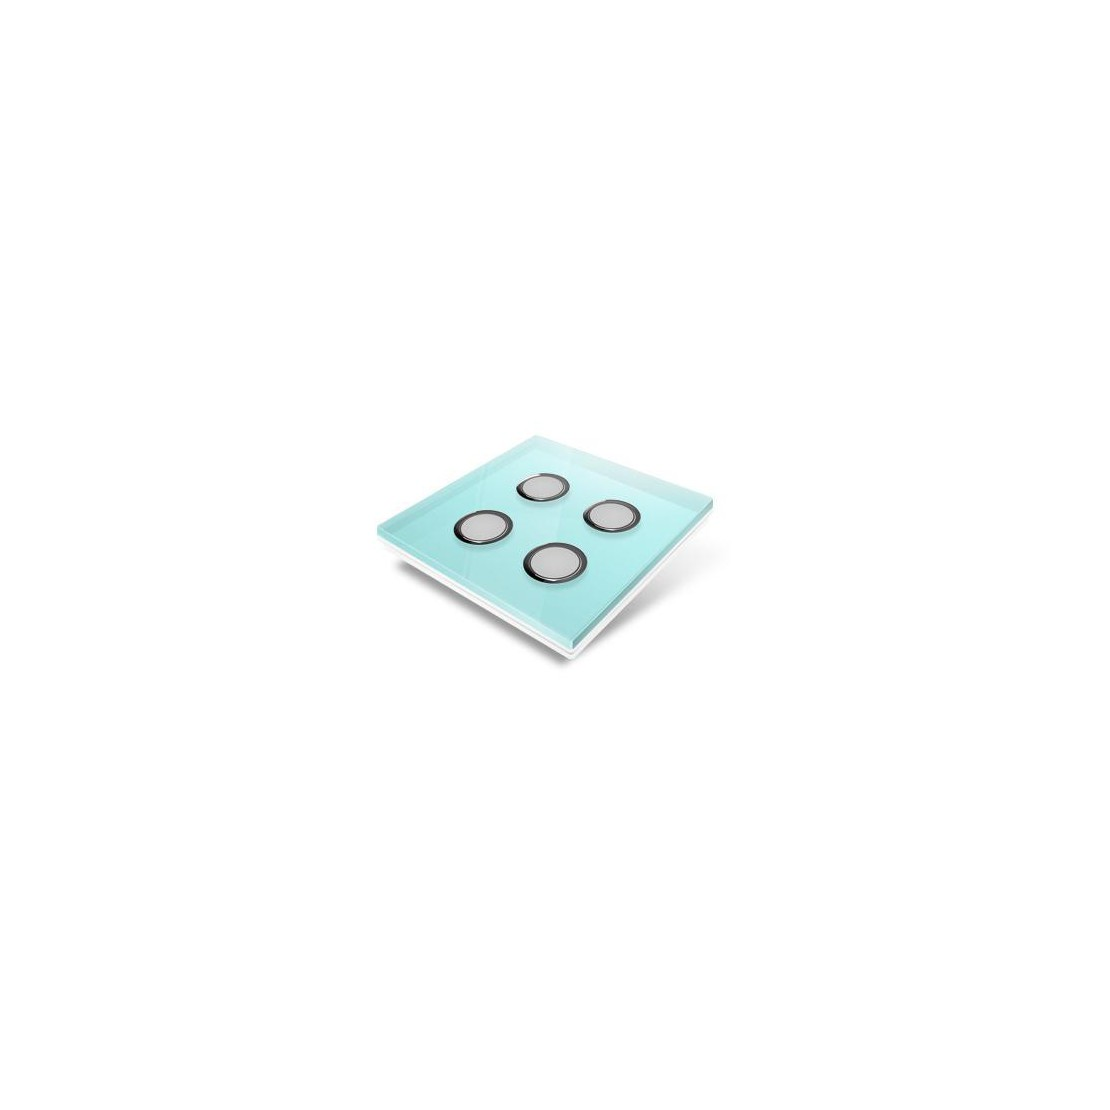 Switchplate for Edisio - light blue crystal